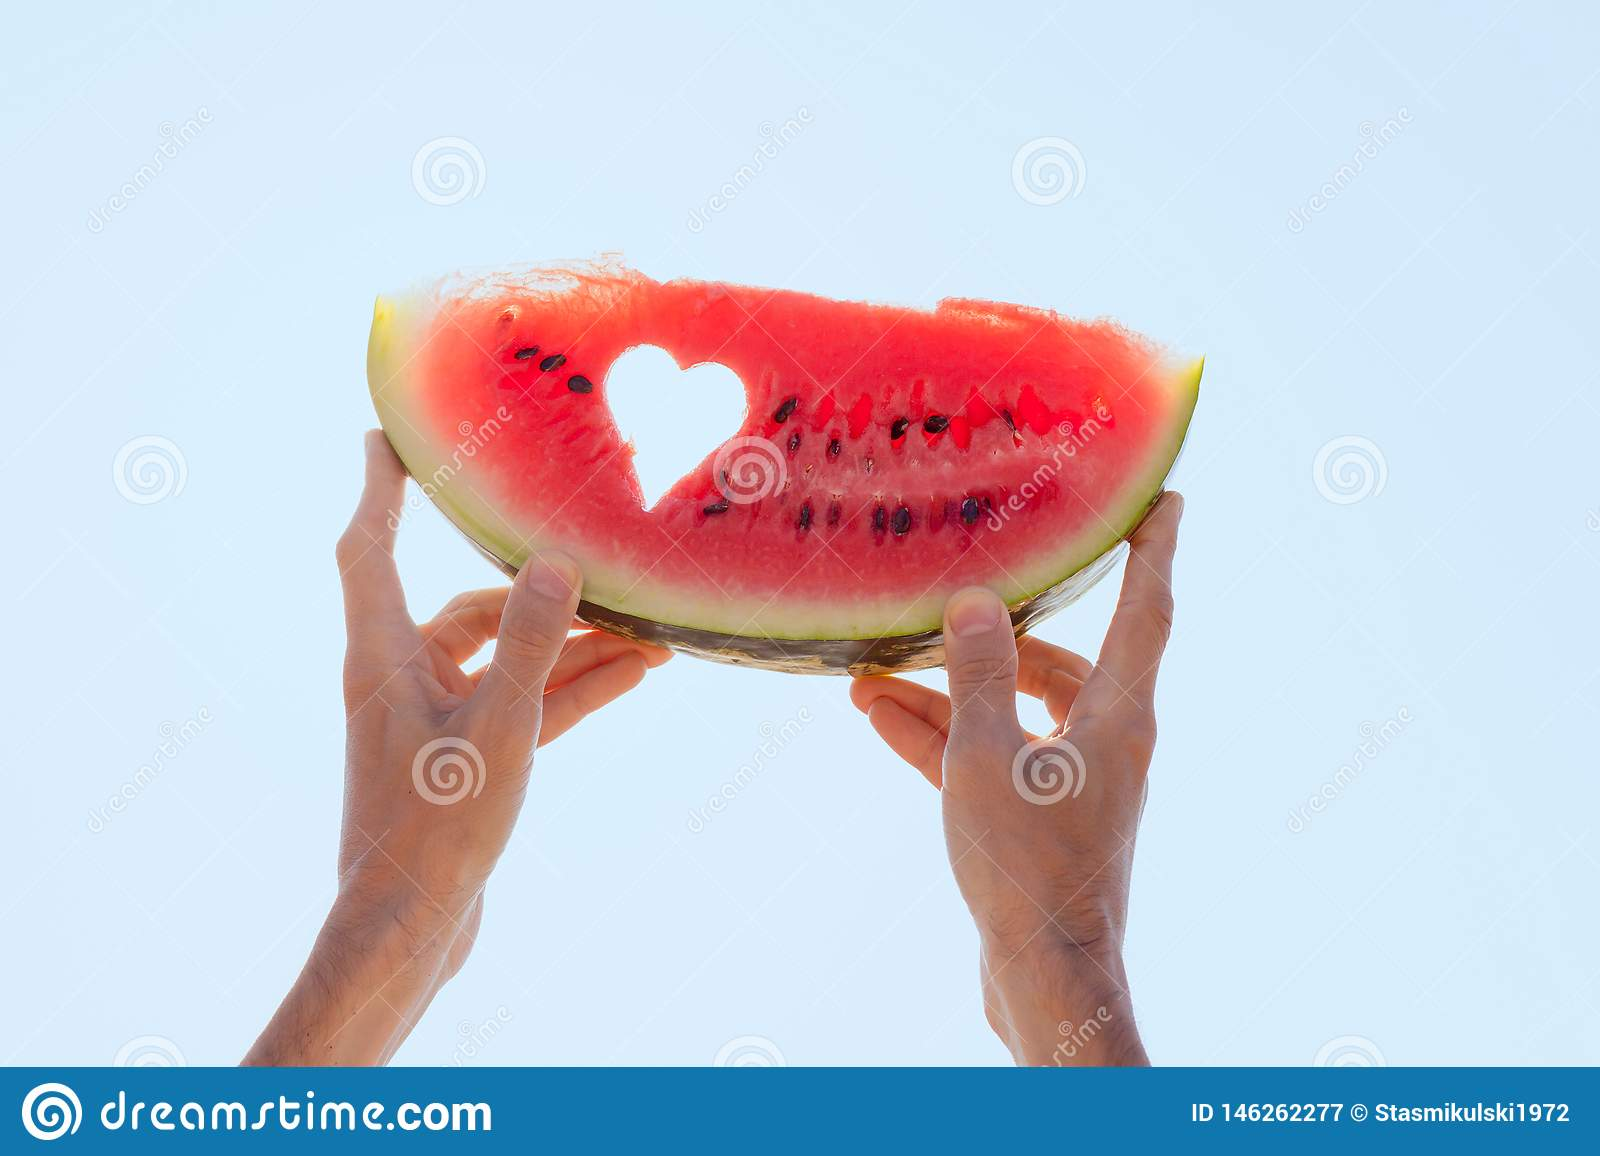 Hands holding a watermelon slice with heart center towards the sky